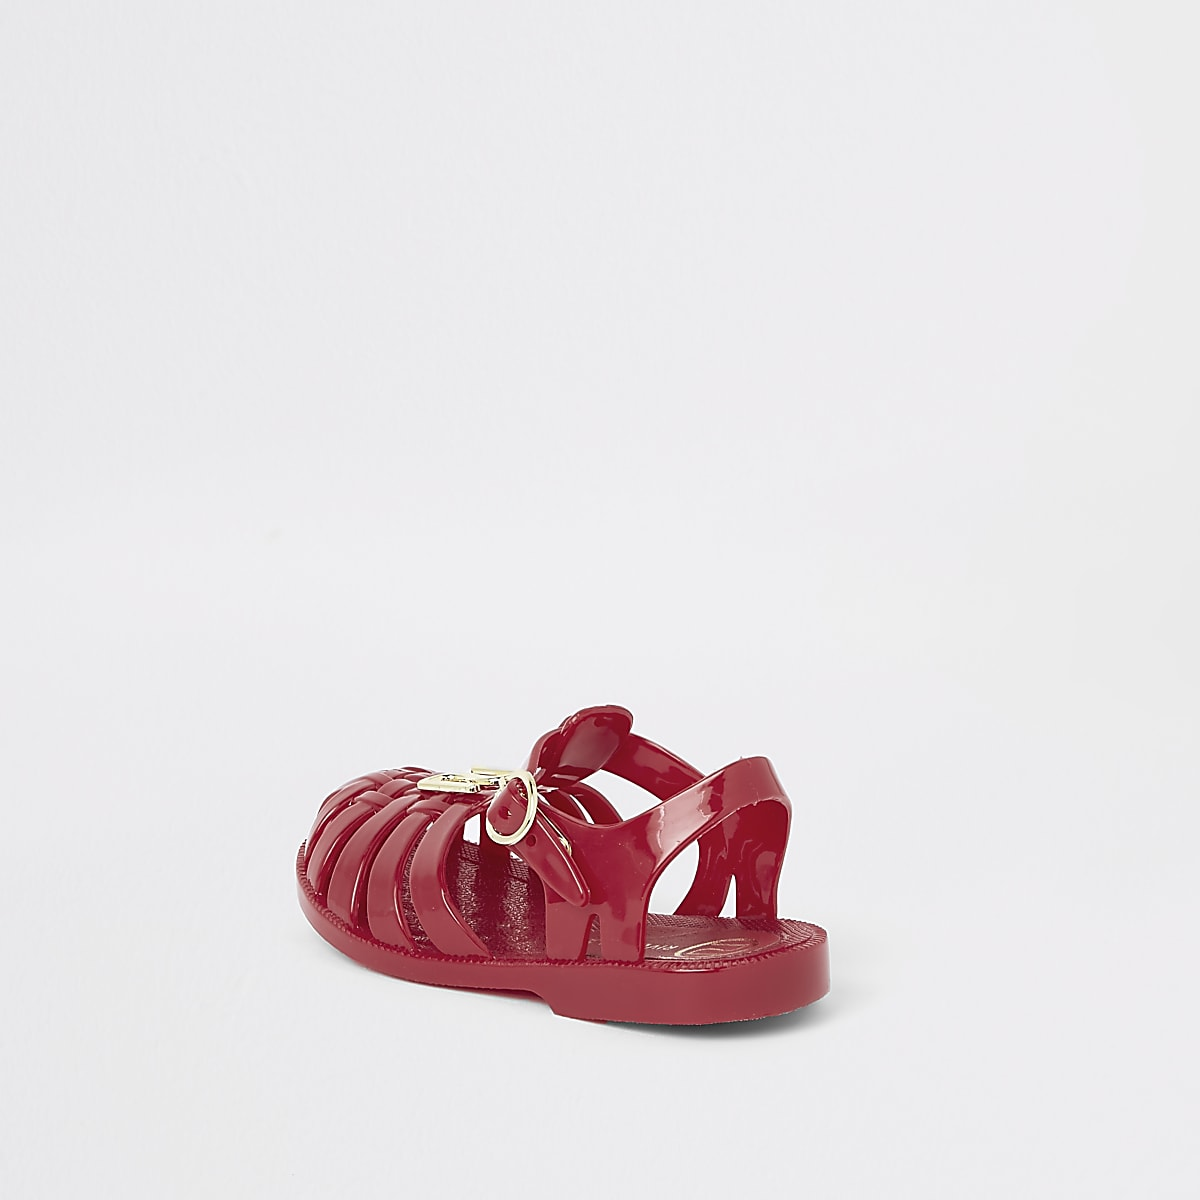 8c24eb6ee614 Mini girls red caged jelly sandals - Baby Girls Sandals - Baby Girls ...